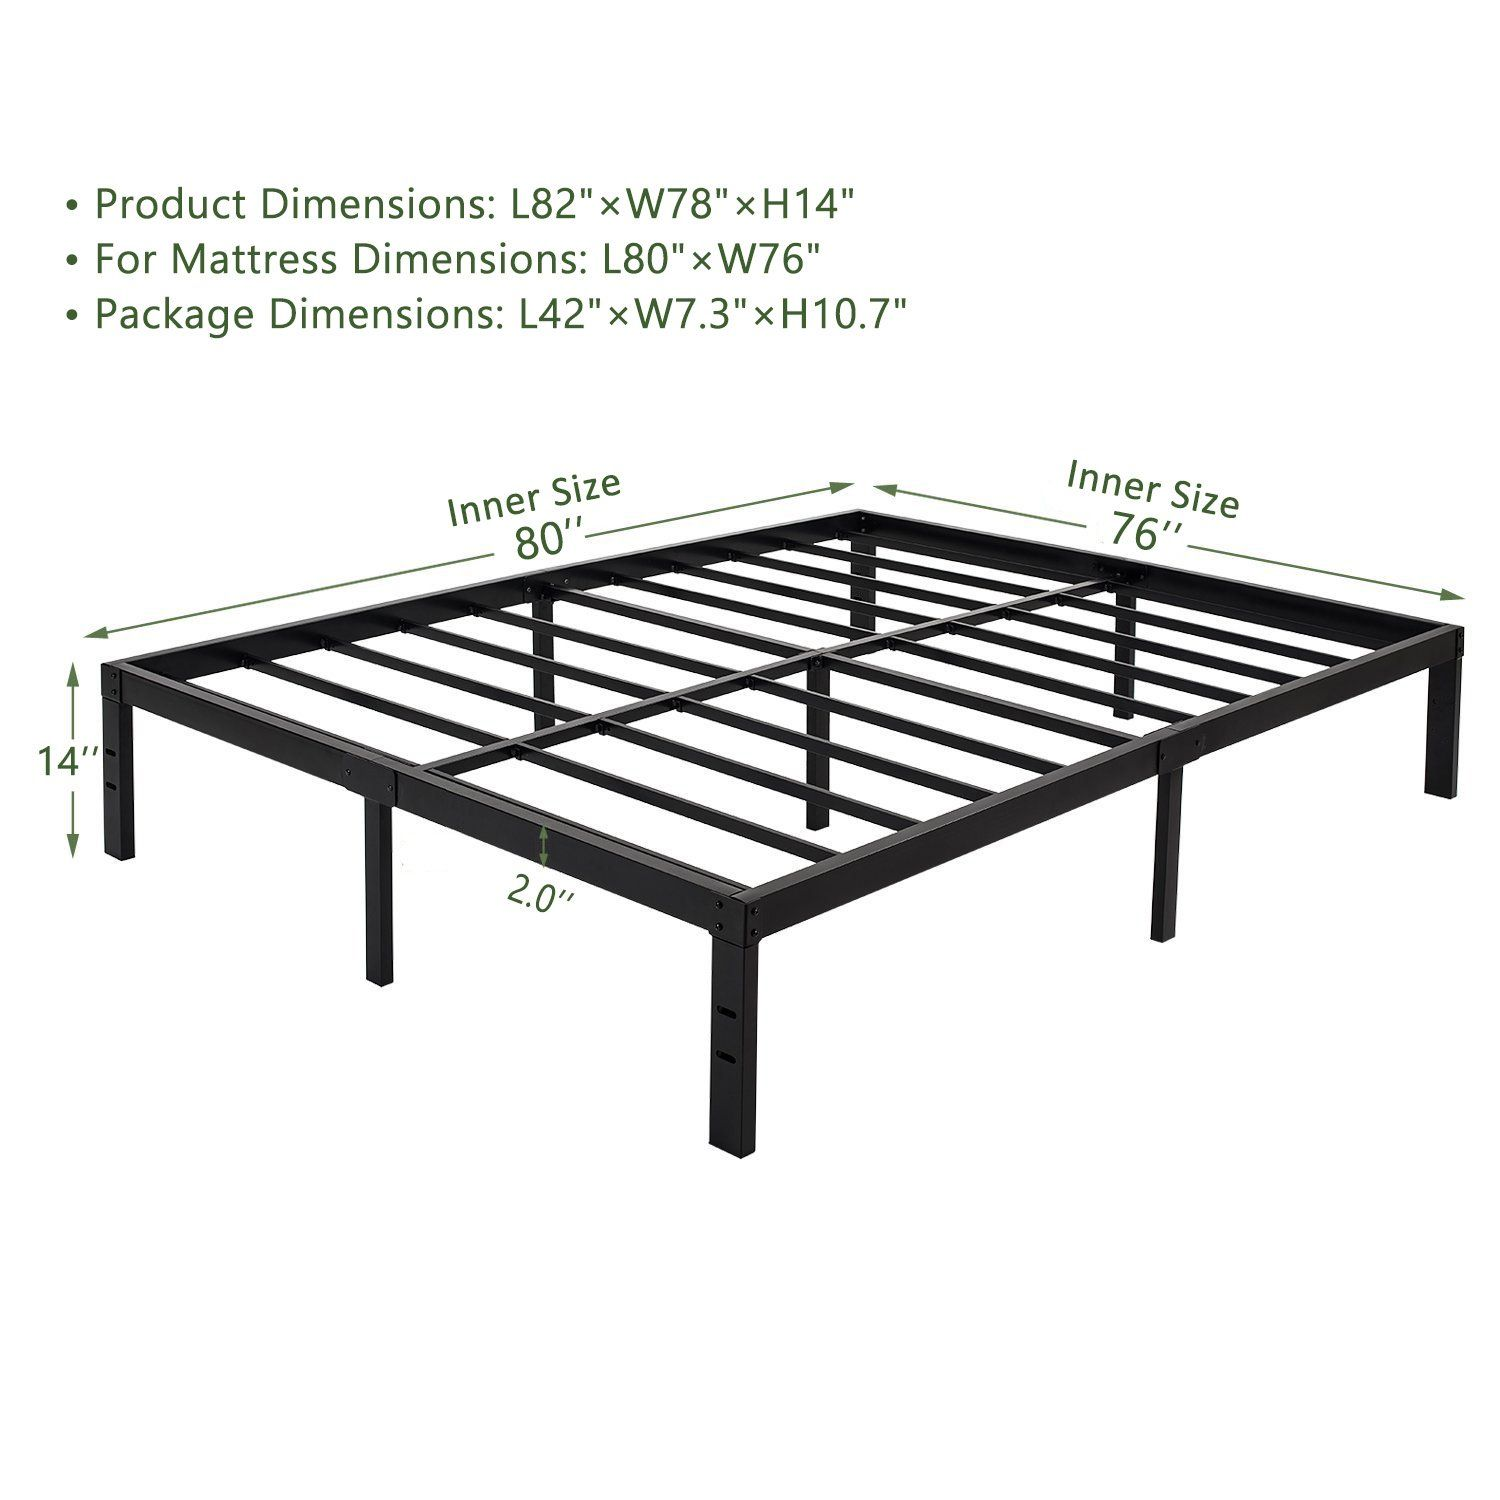 45min 14 Inch Platform Bed Frame Easy Assembly Mattress Foundation